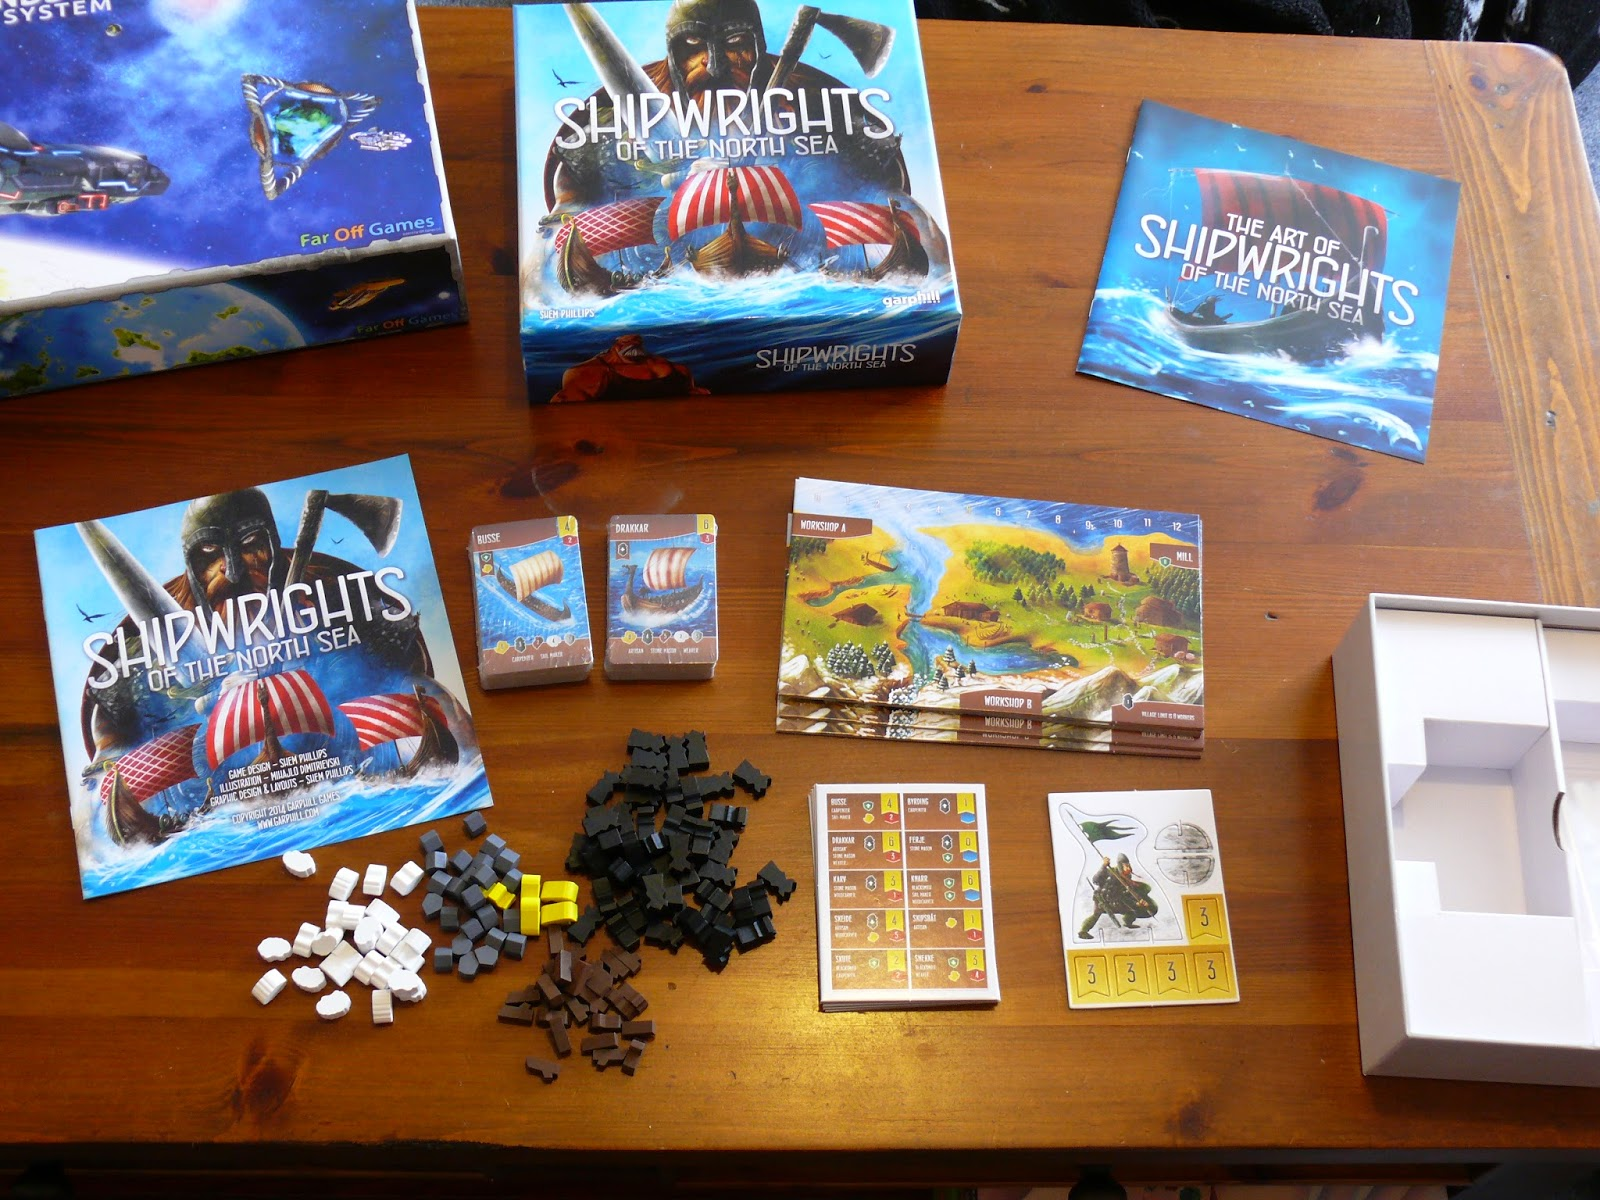 Shipwrights of the North Sea: Review | Shipwrights of the North Sea